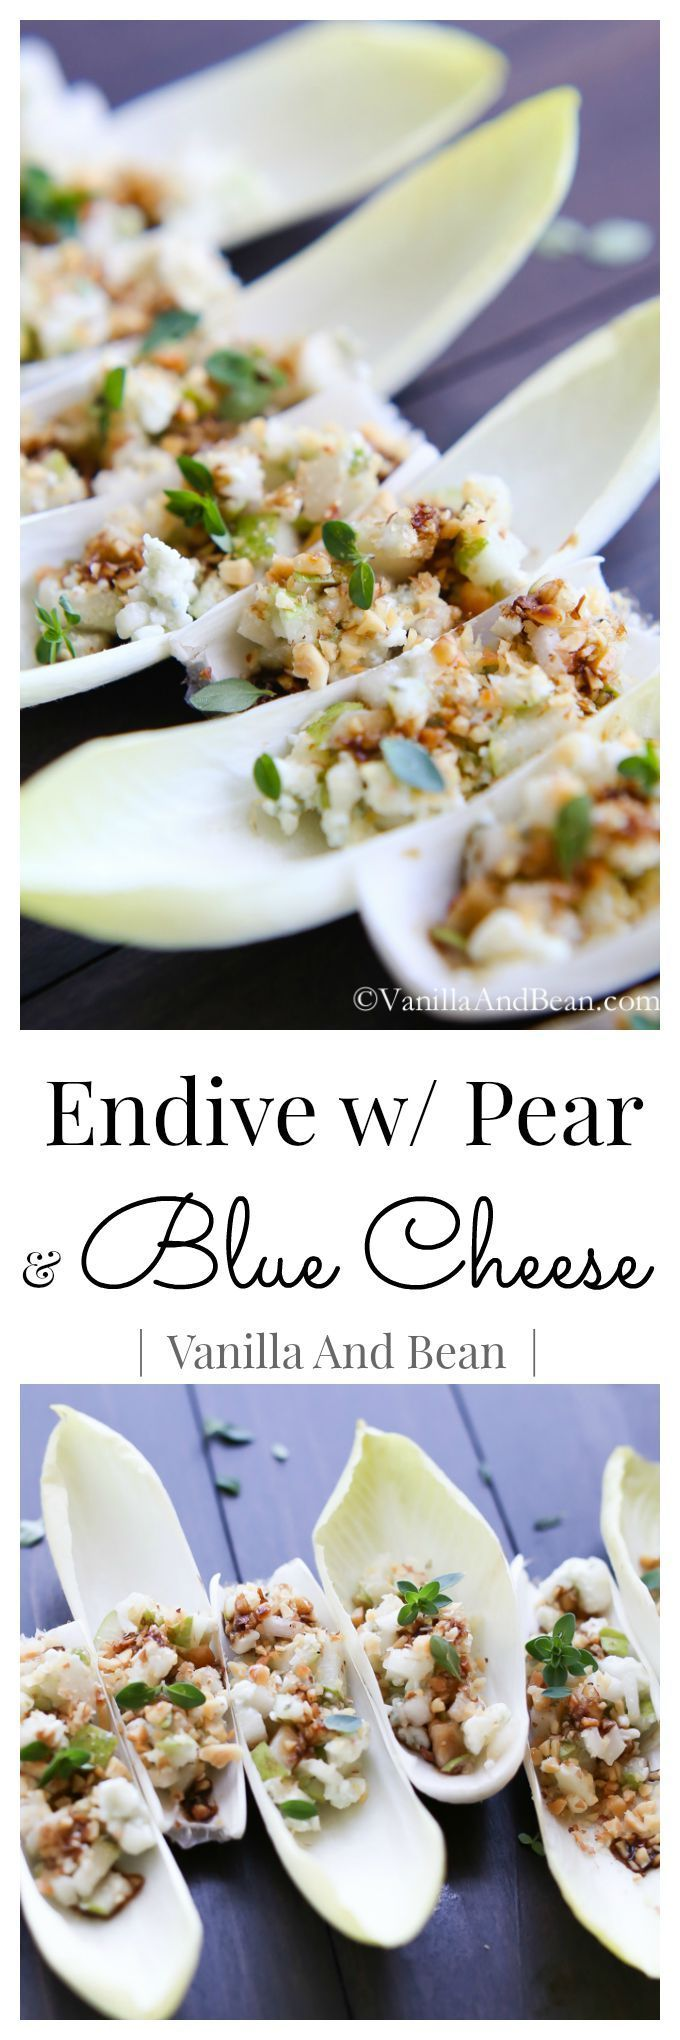 Endive with pear and blue cheese appetizer recipe - delicious and elegant!